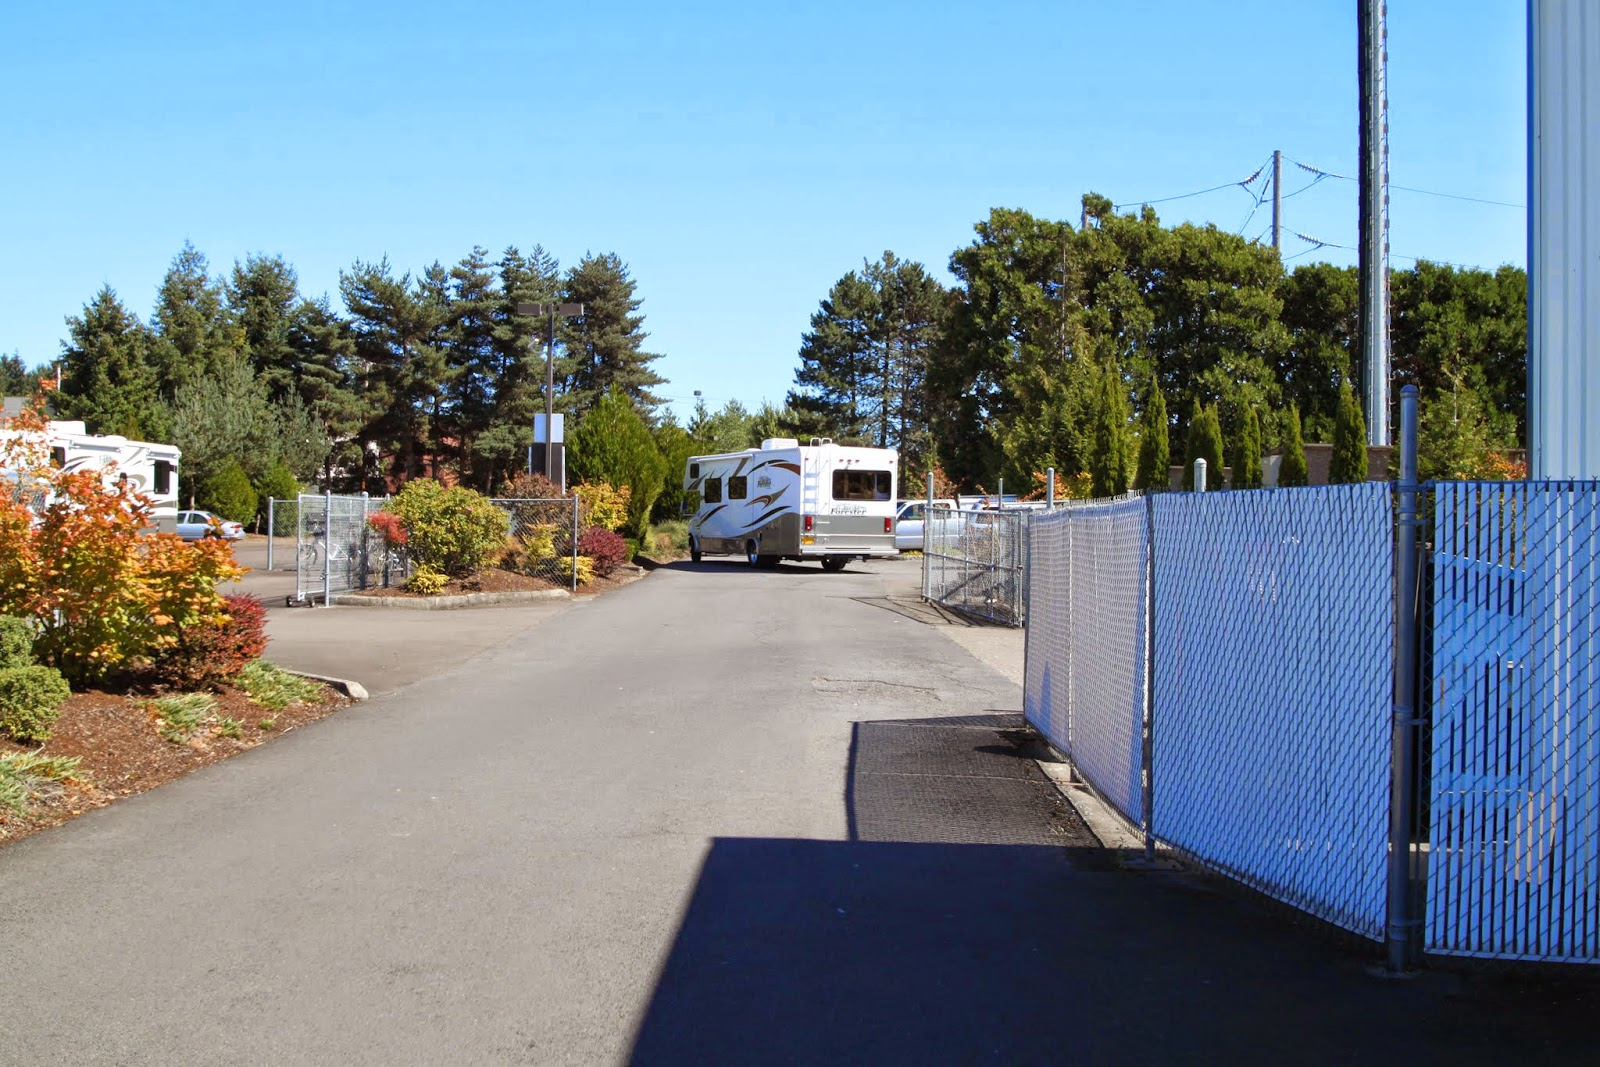 leaving RV's To Go in Wilsonville, OR